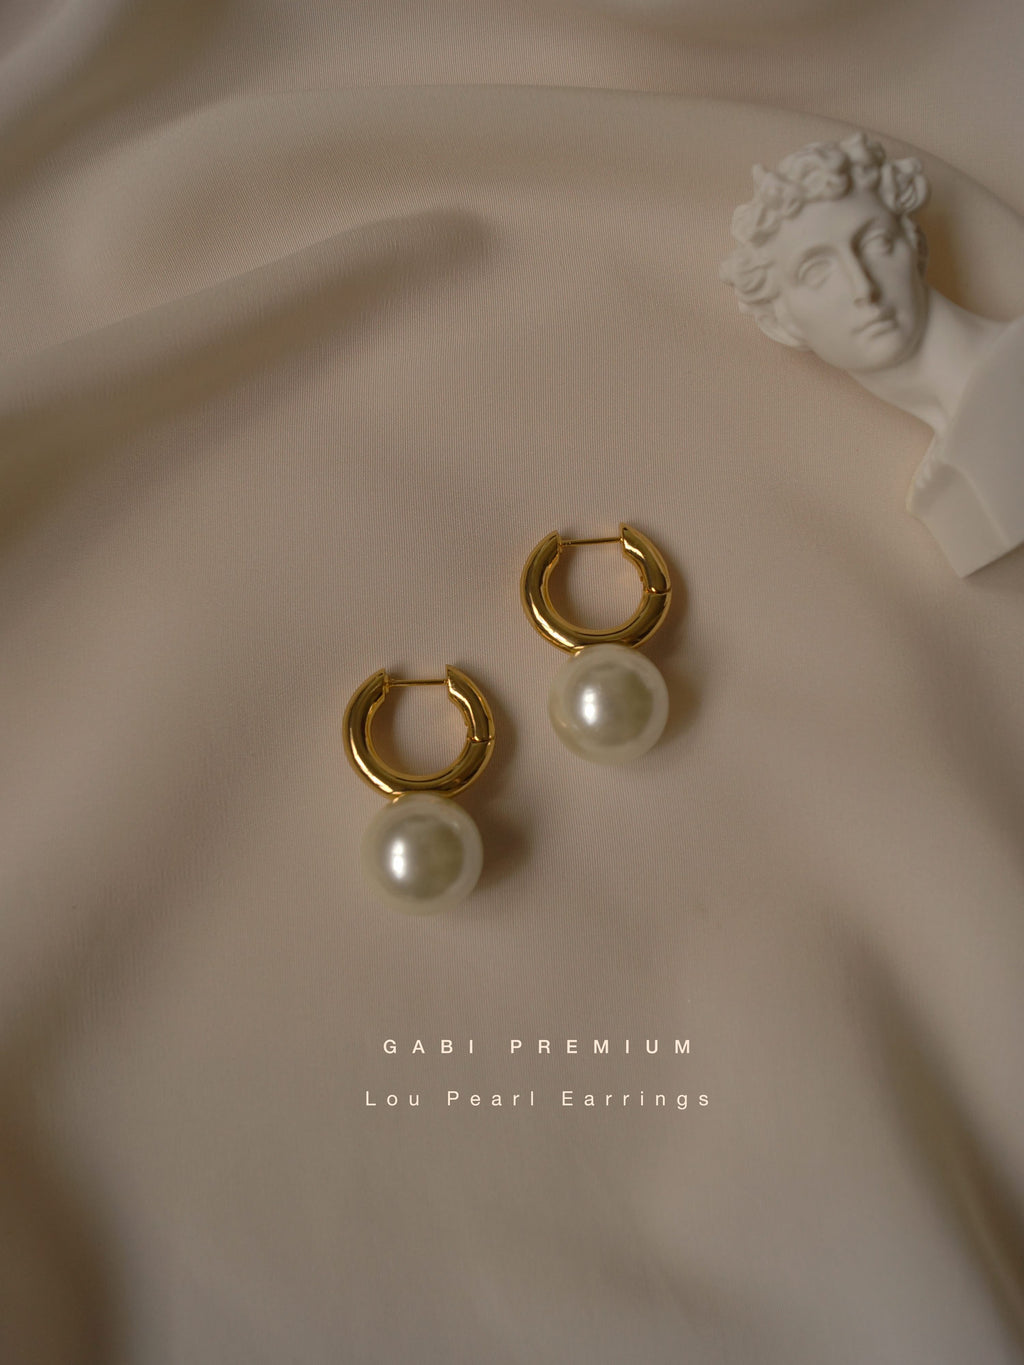 Lou Pearl Earrings (Gold-plated) *GABI PREMIUM